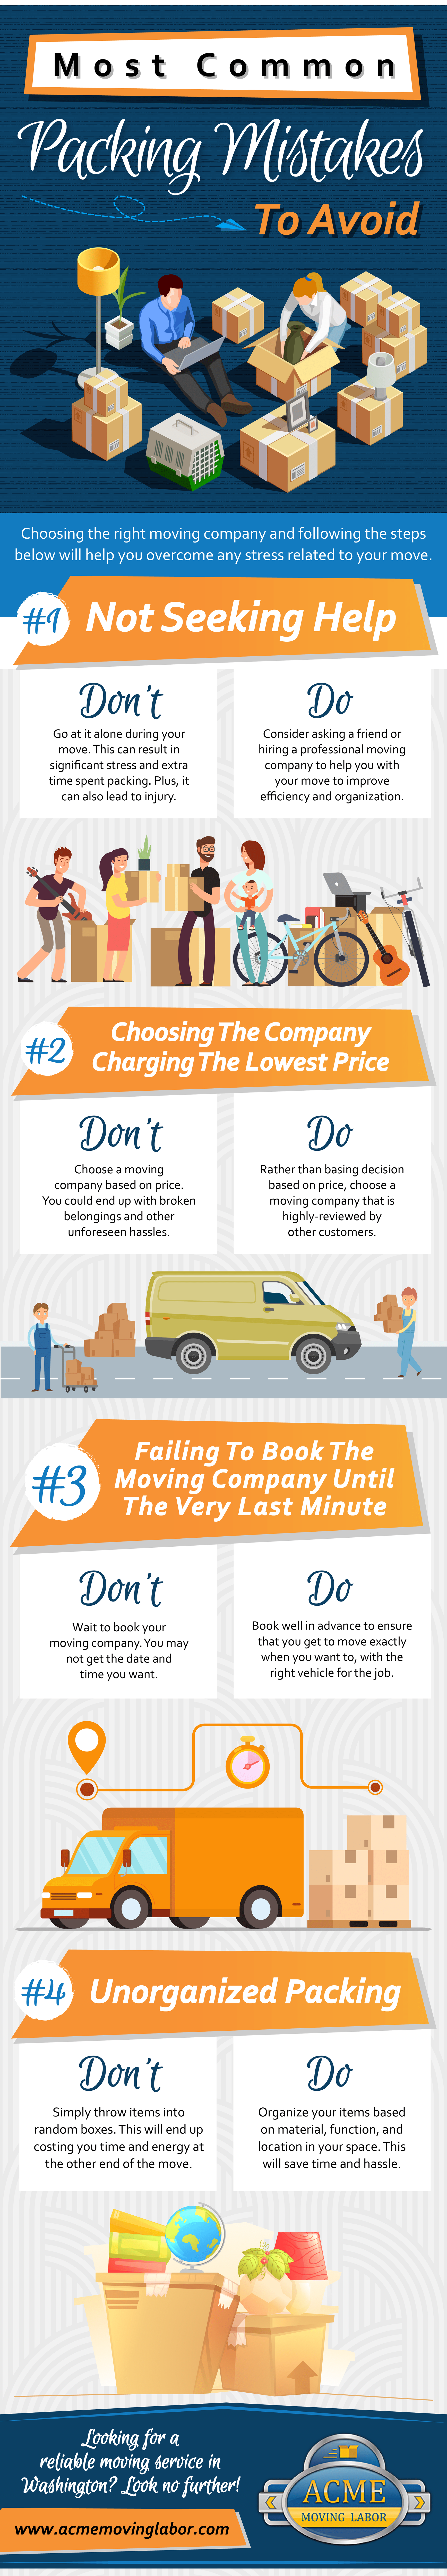 most common packing mistakes to avoid